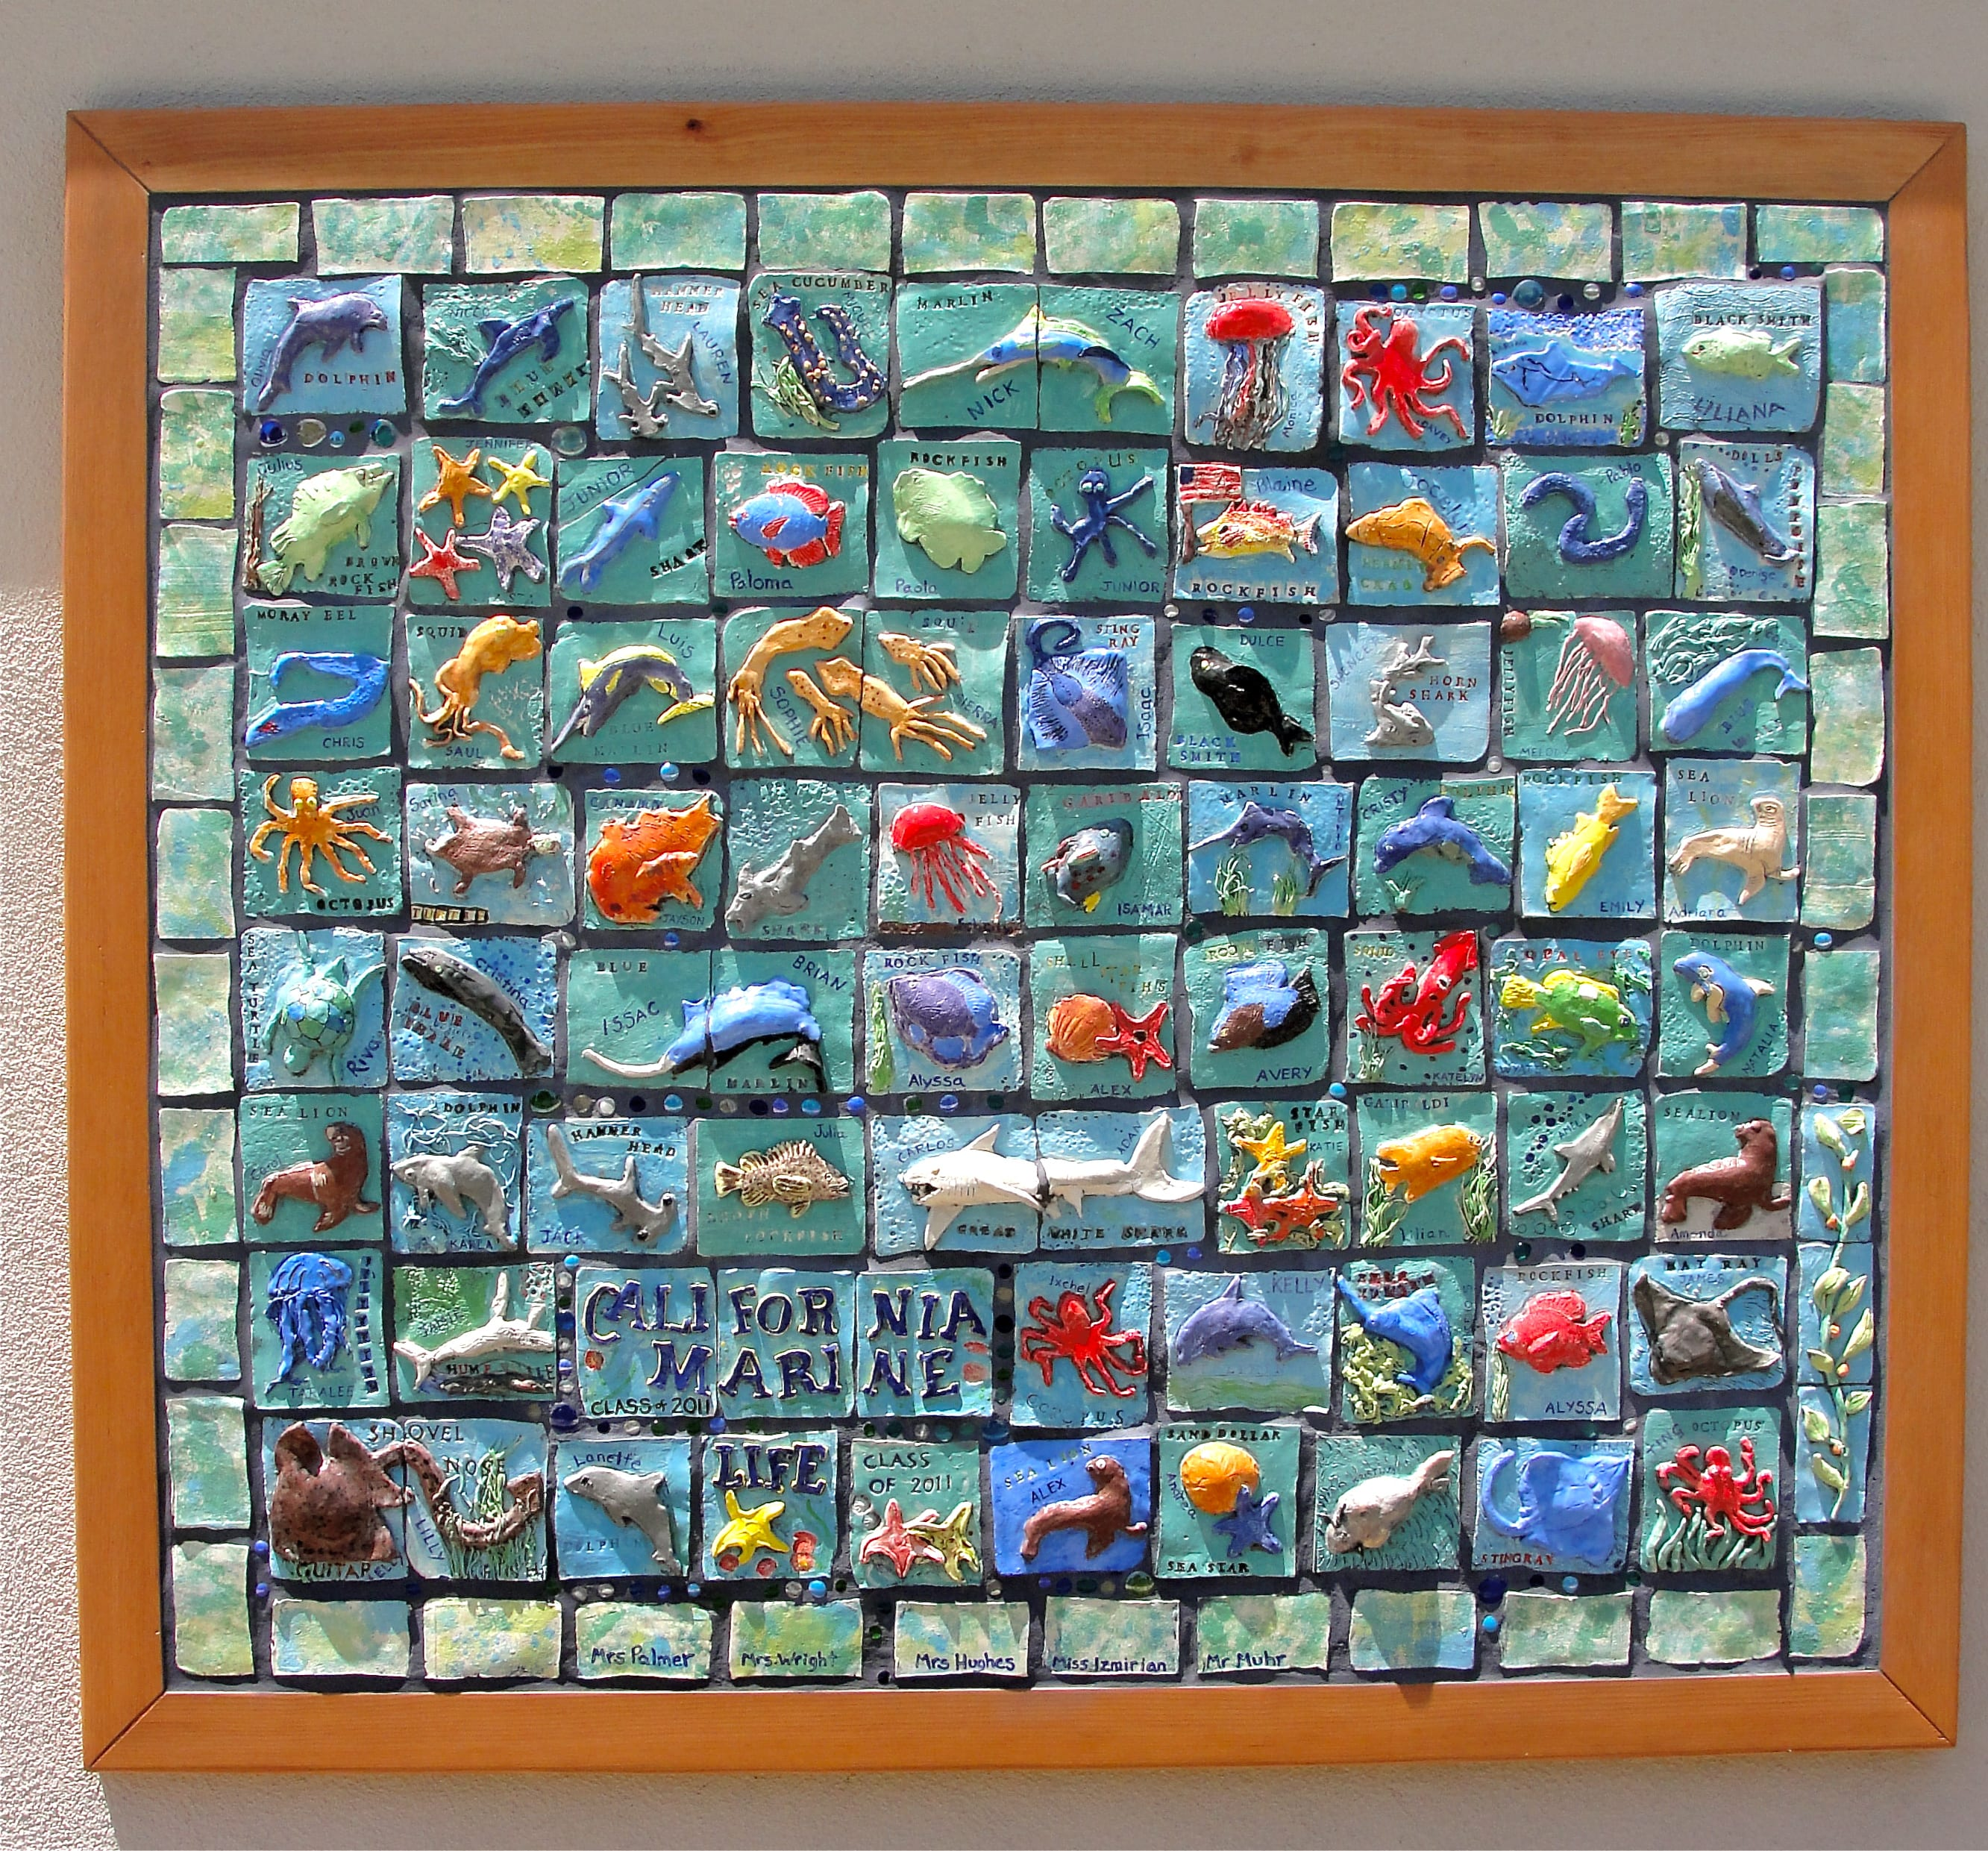 California Marine Life Ceramic Tile Mural Collaborative Art Project